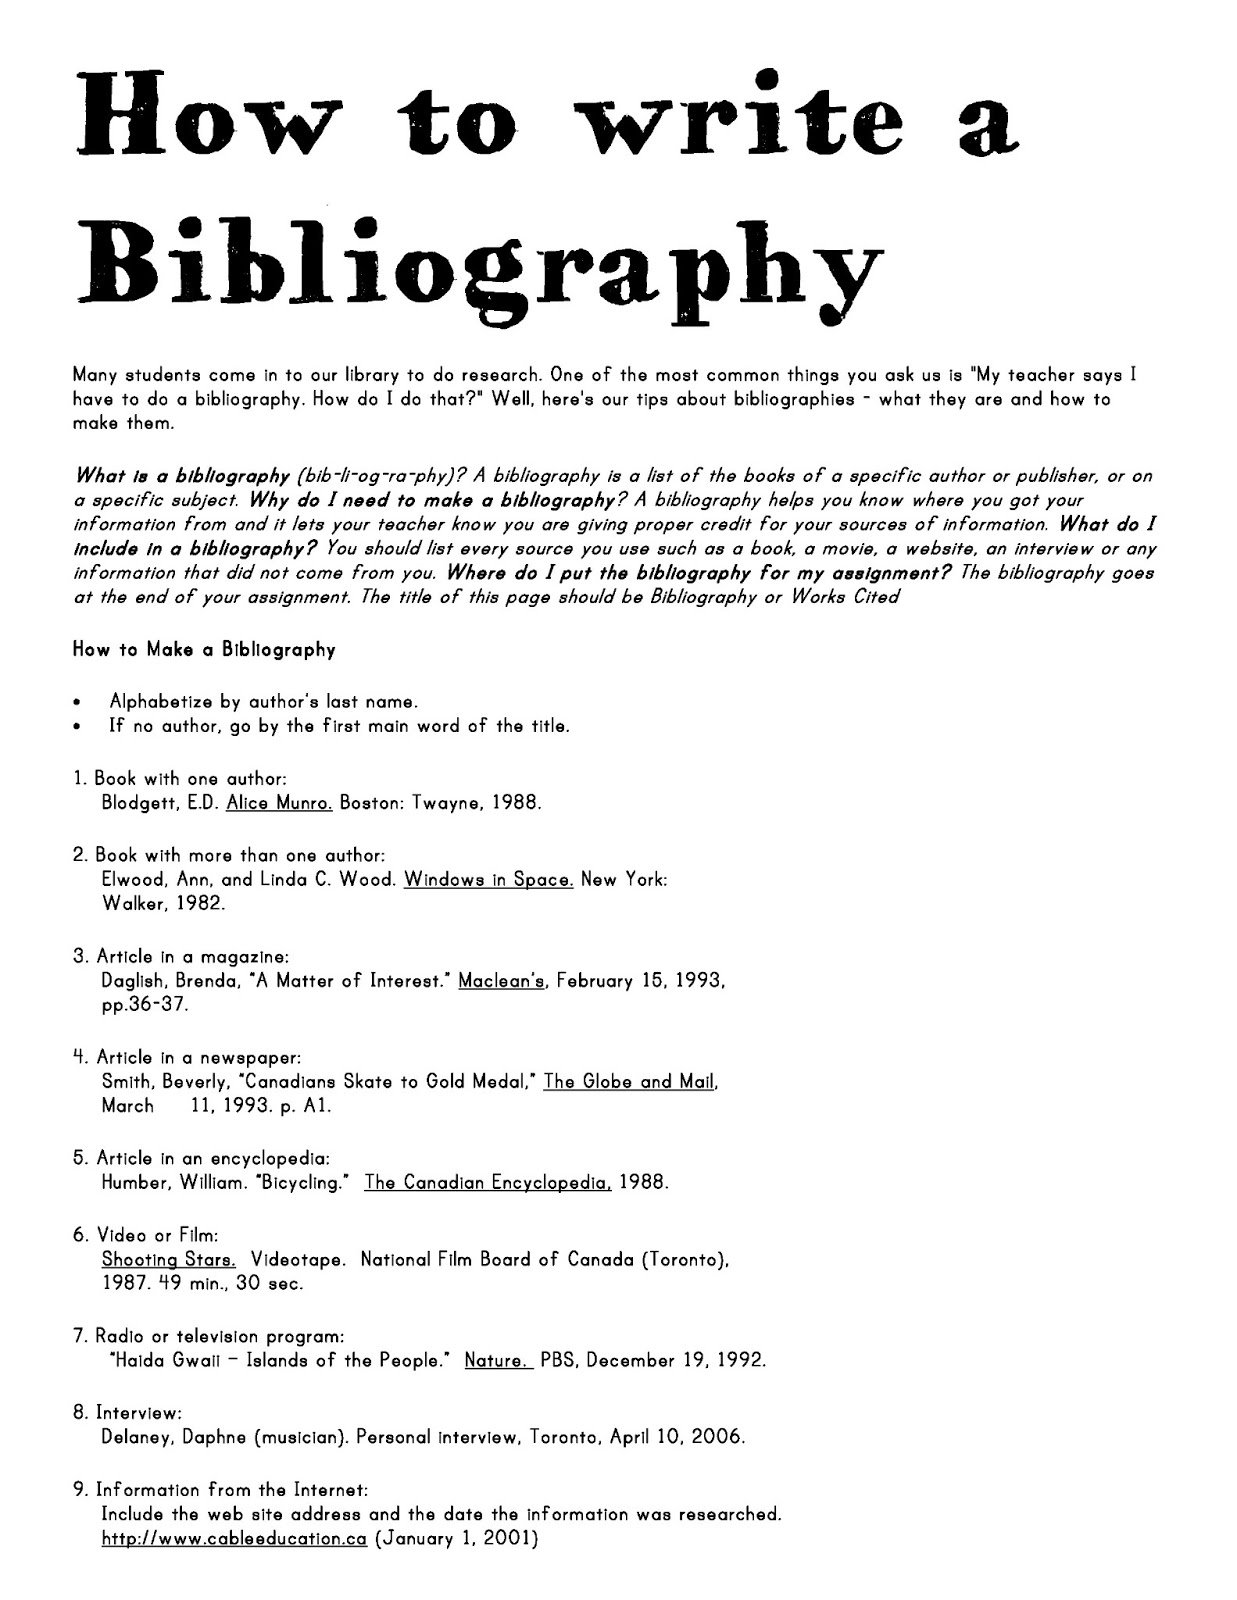 Annonated bibliography and final term paper